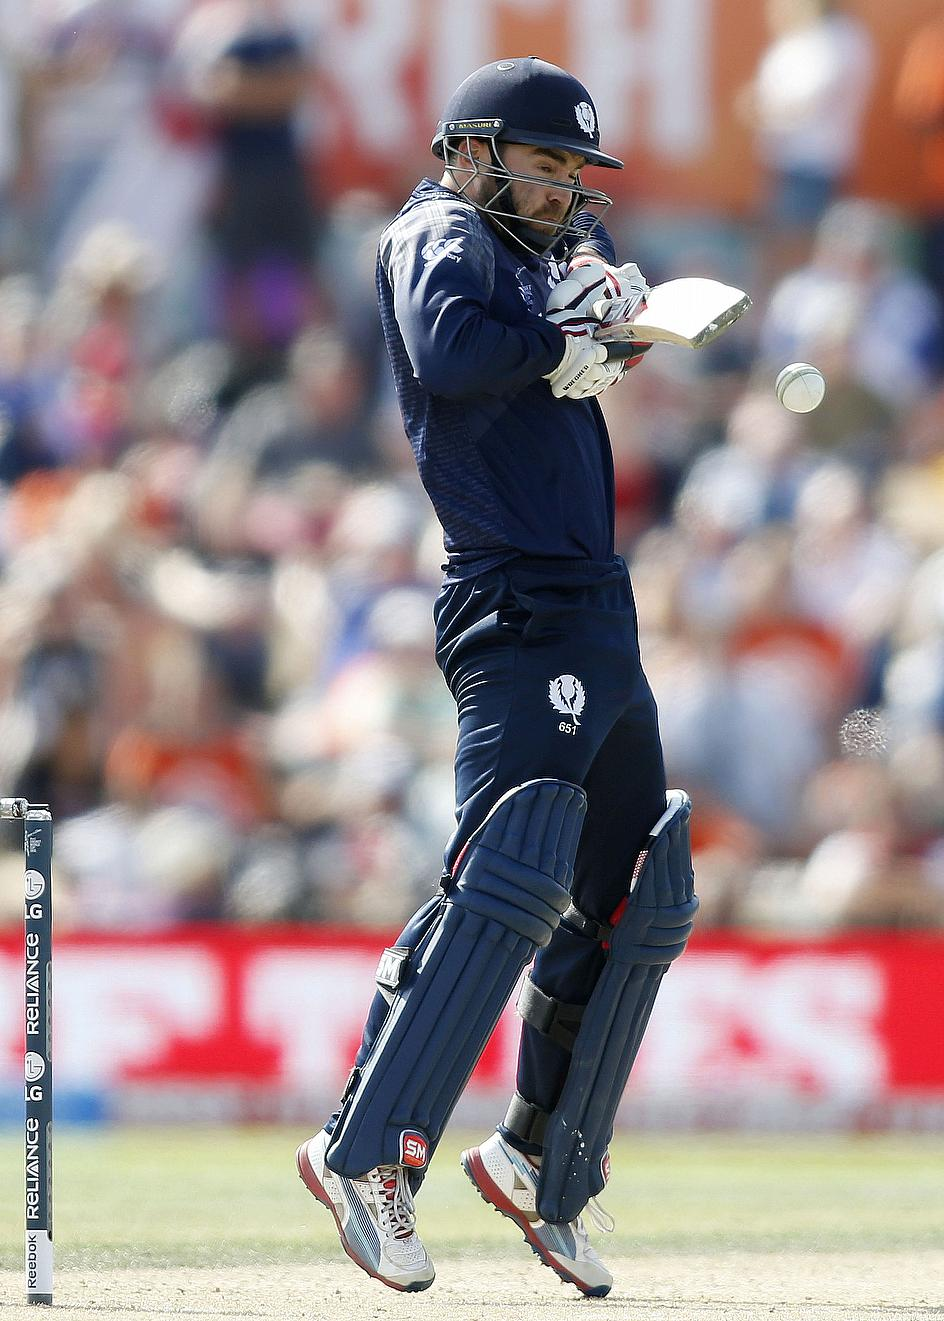 Lack Of Experience Made The Difference - Preston Mommsen